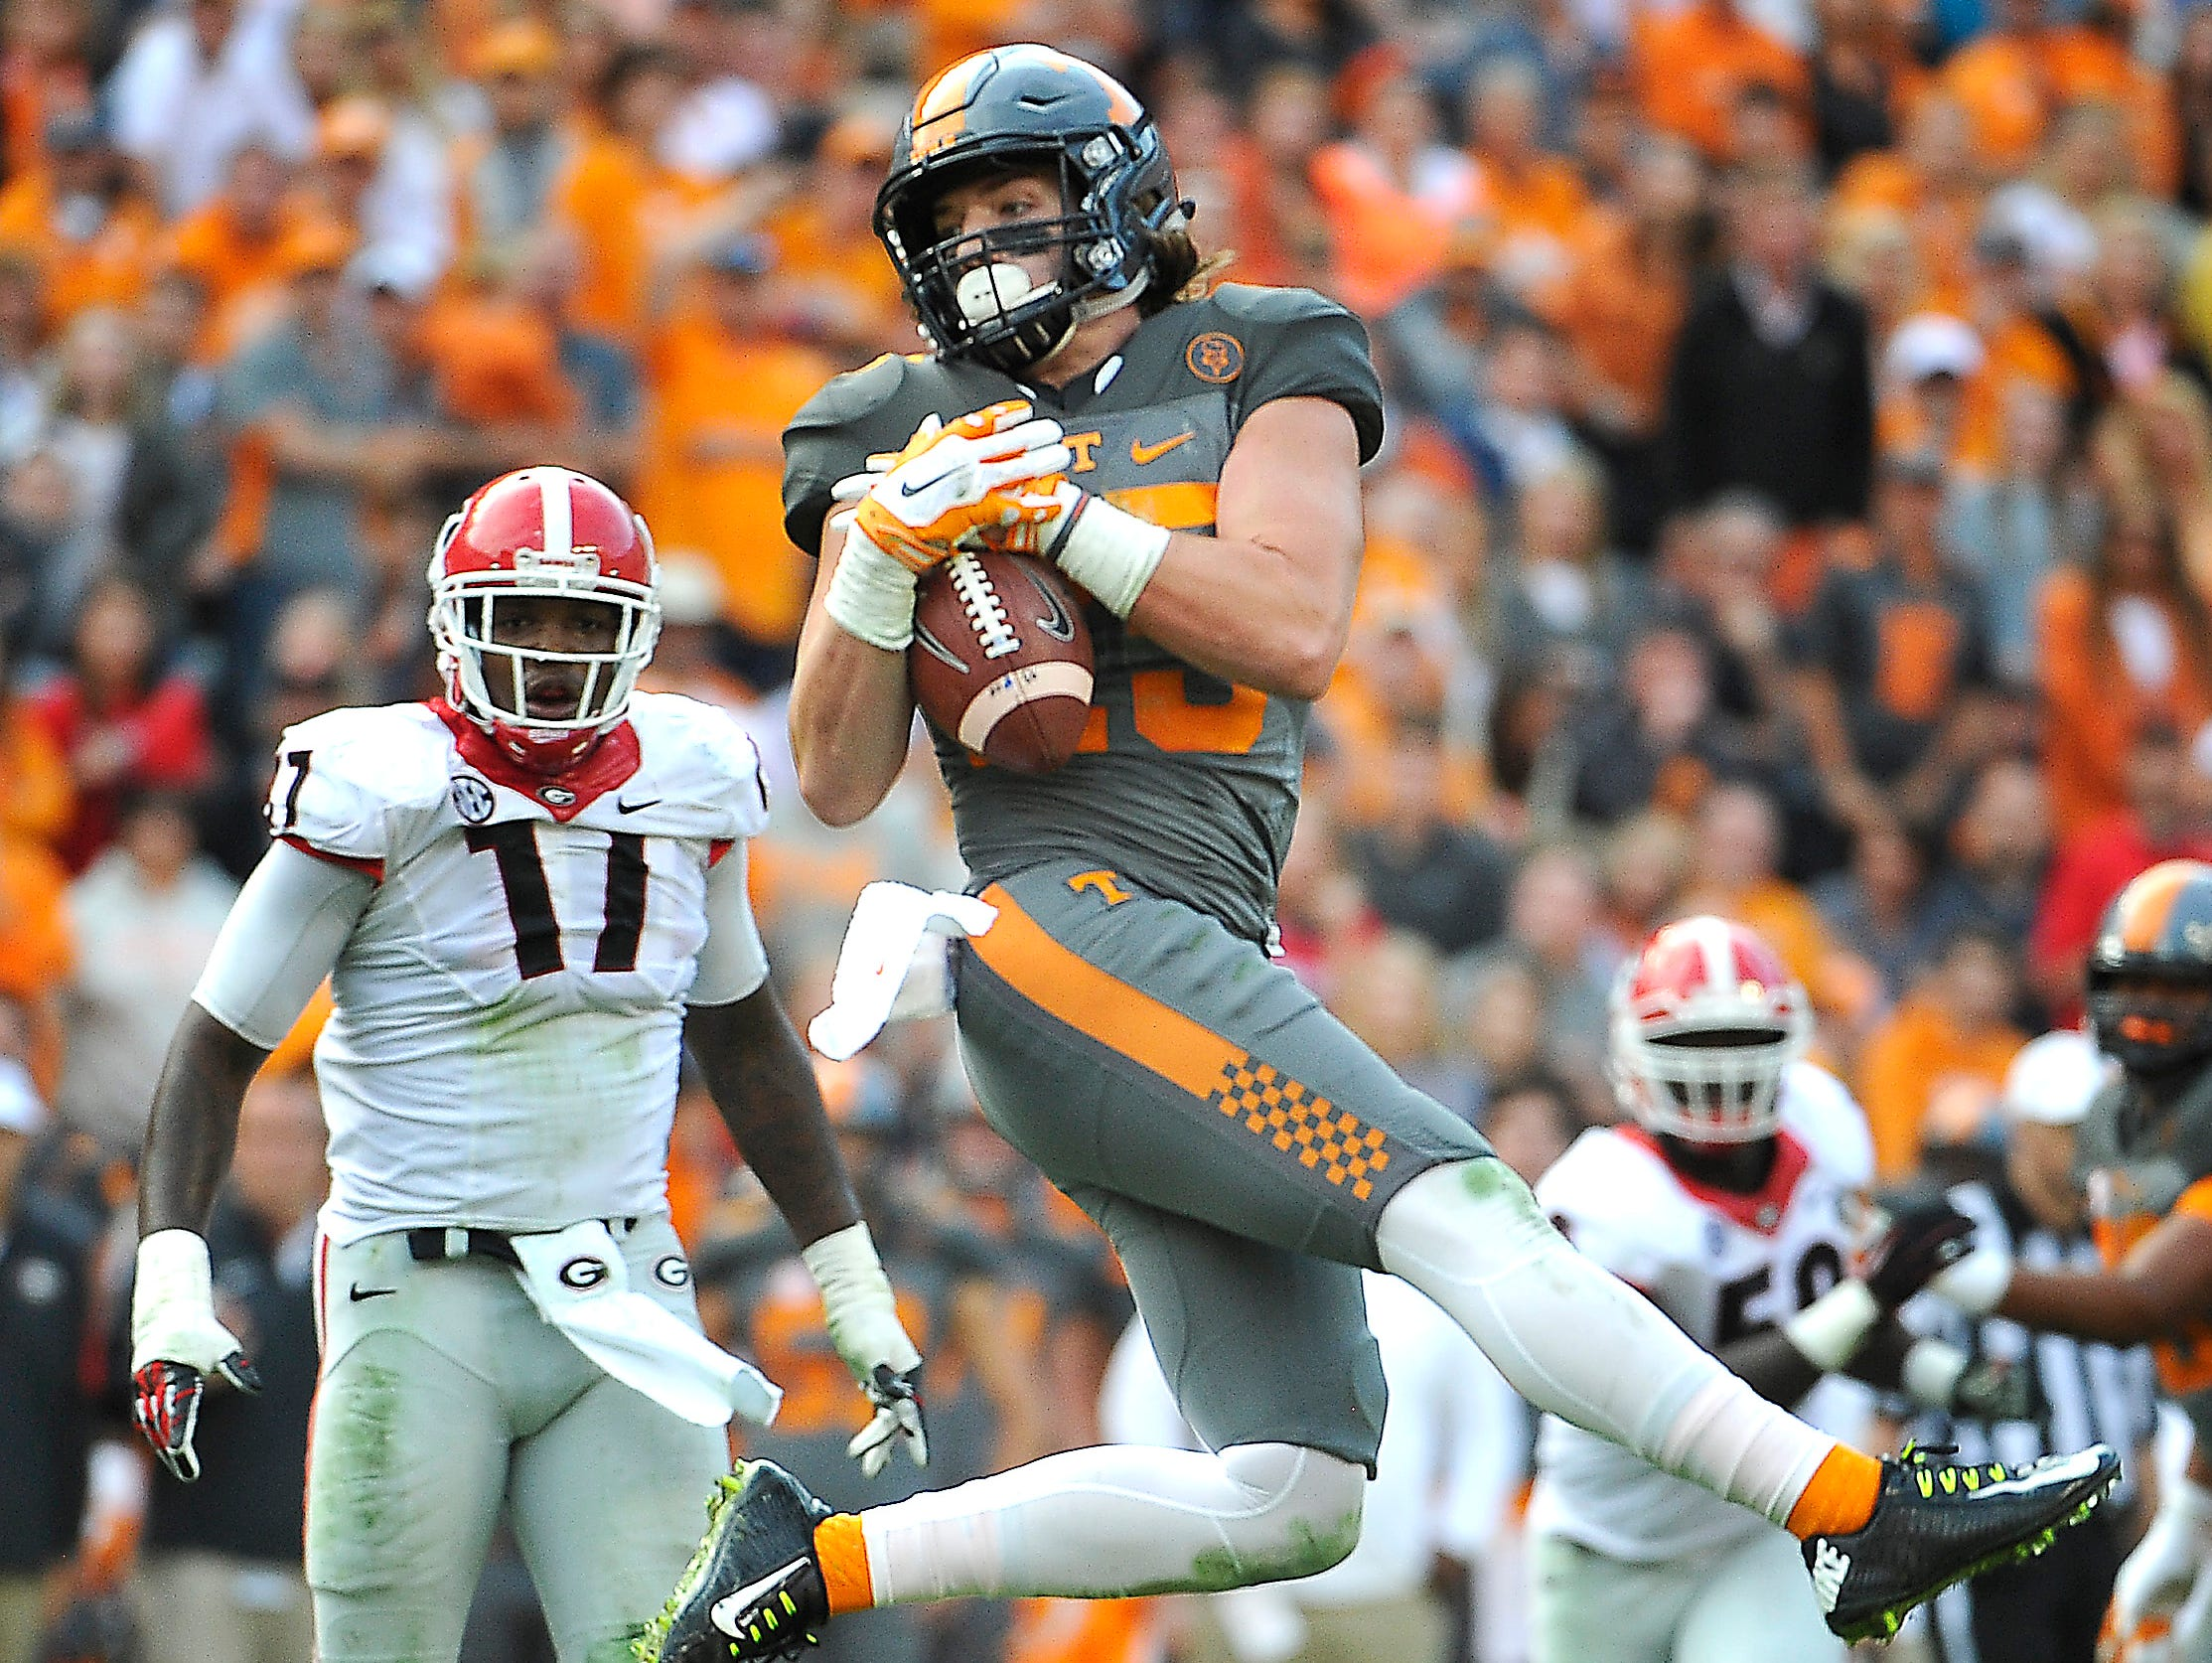 Tennessee wide receiver Josh Smith (25) makes a catch and turns it into a touchdown against Georgia on Oct. 10, 2015.